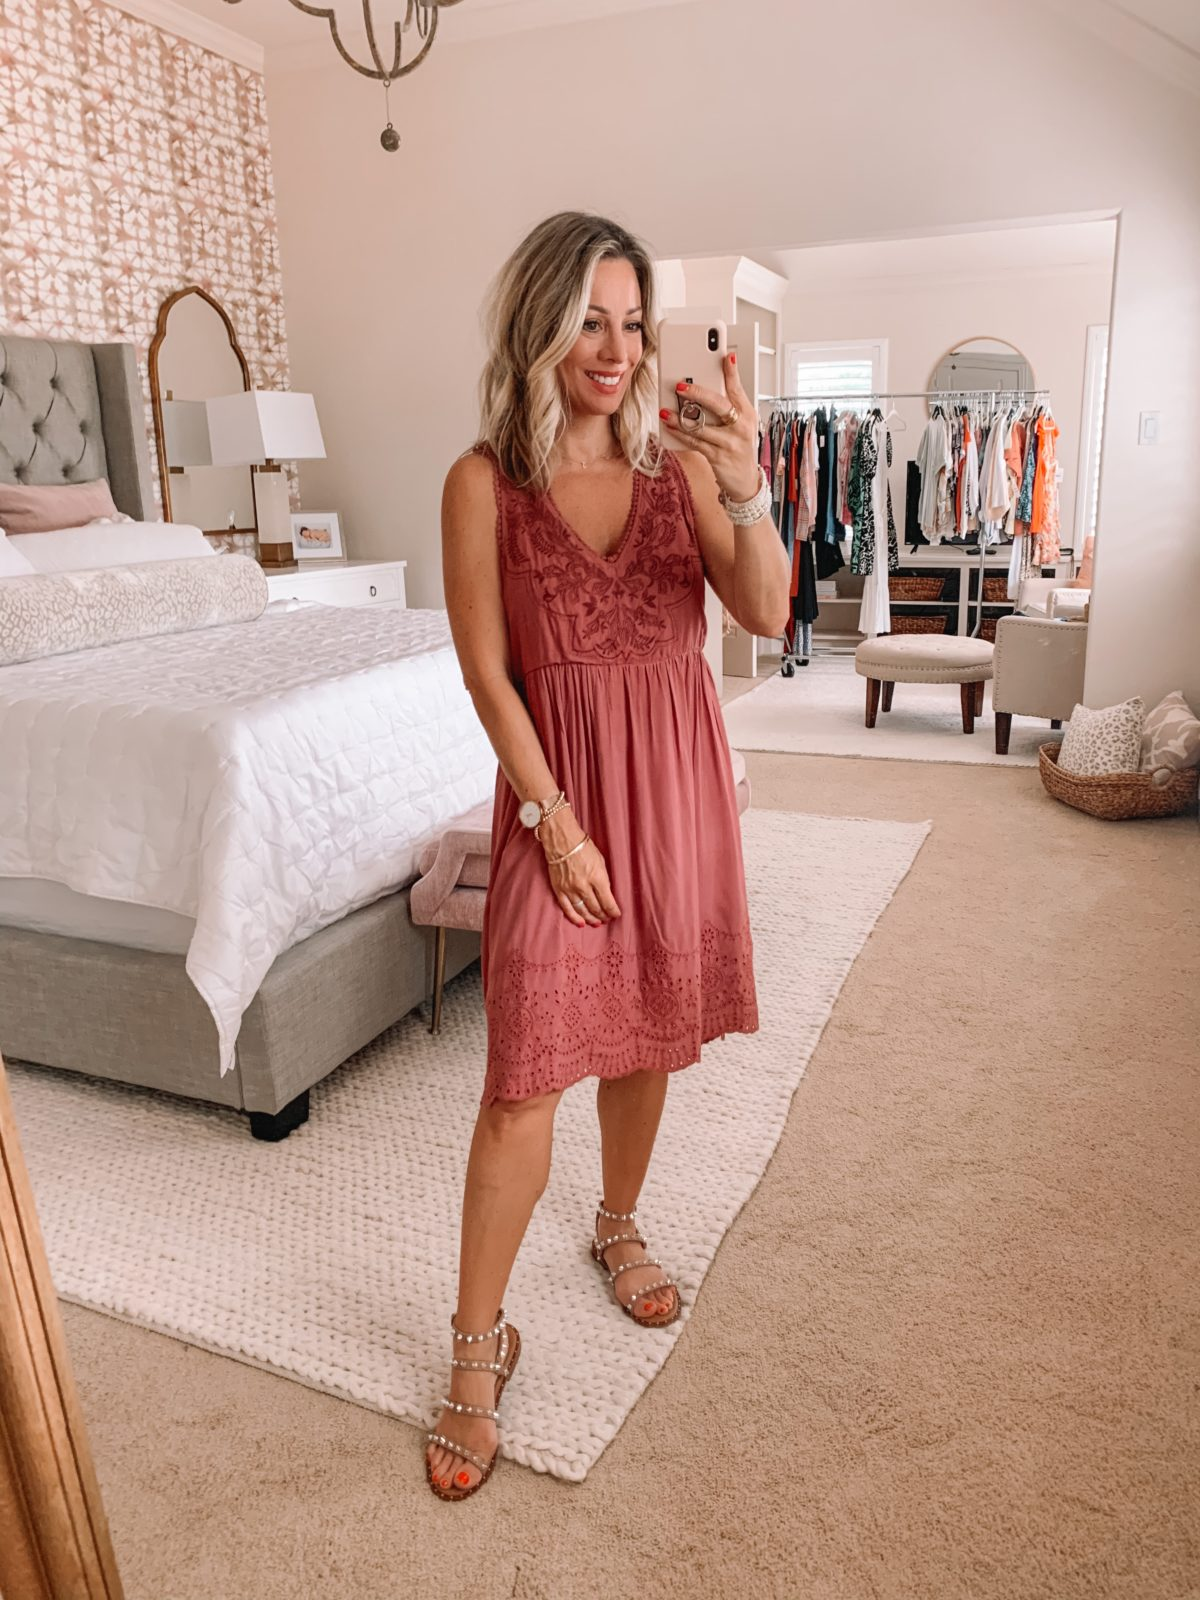 Dressing Room Finds Nordstrom and Target, V-Neck Embroidered Dress, Studded Sandals